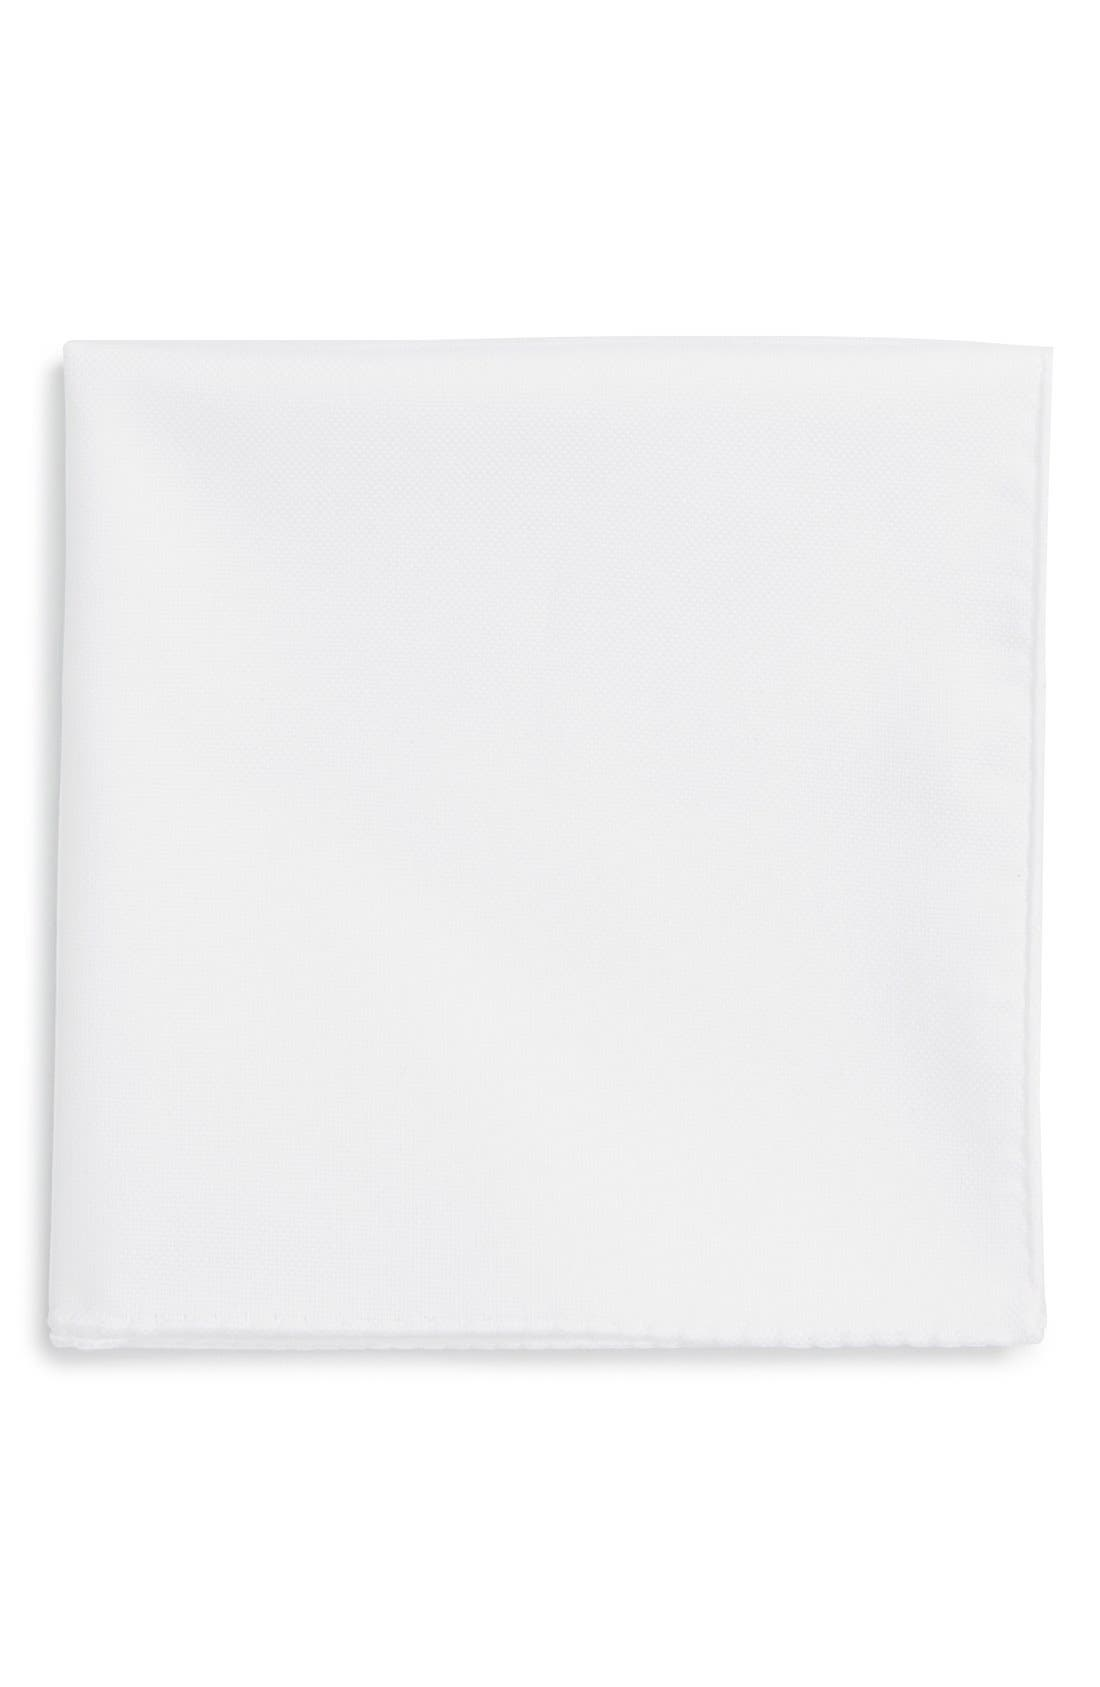 TED BAKER LONDON, Solid Cotton Pocket Square, Main thumbnail 1, color, WHITE